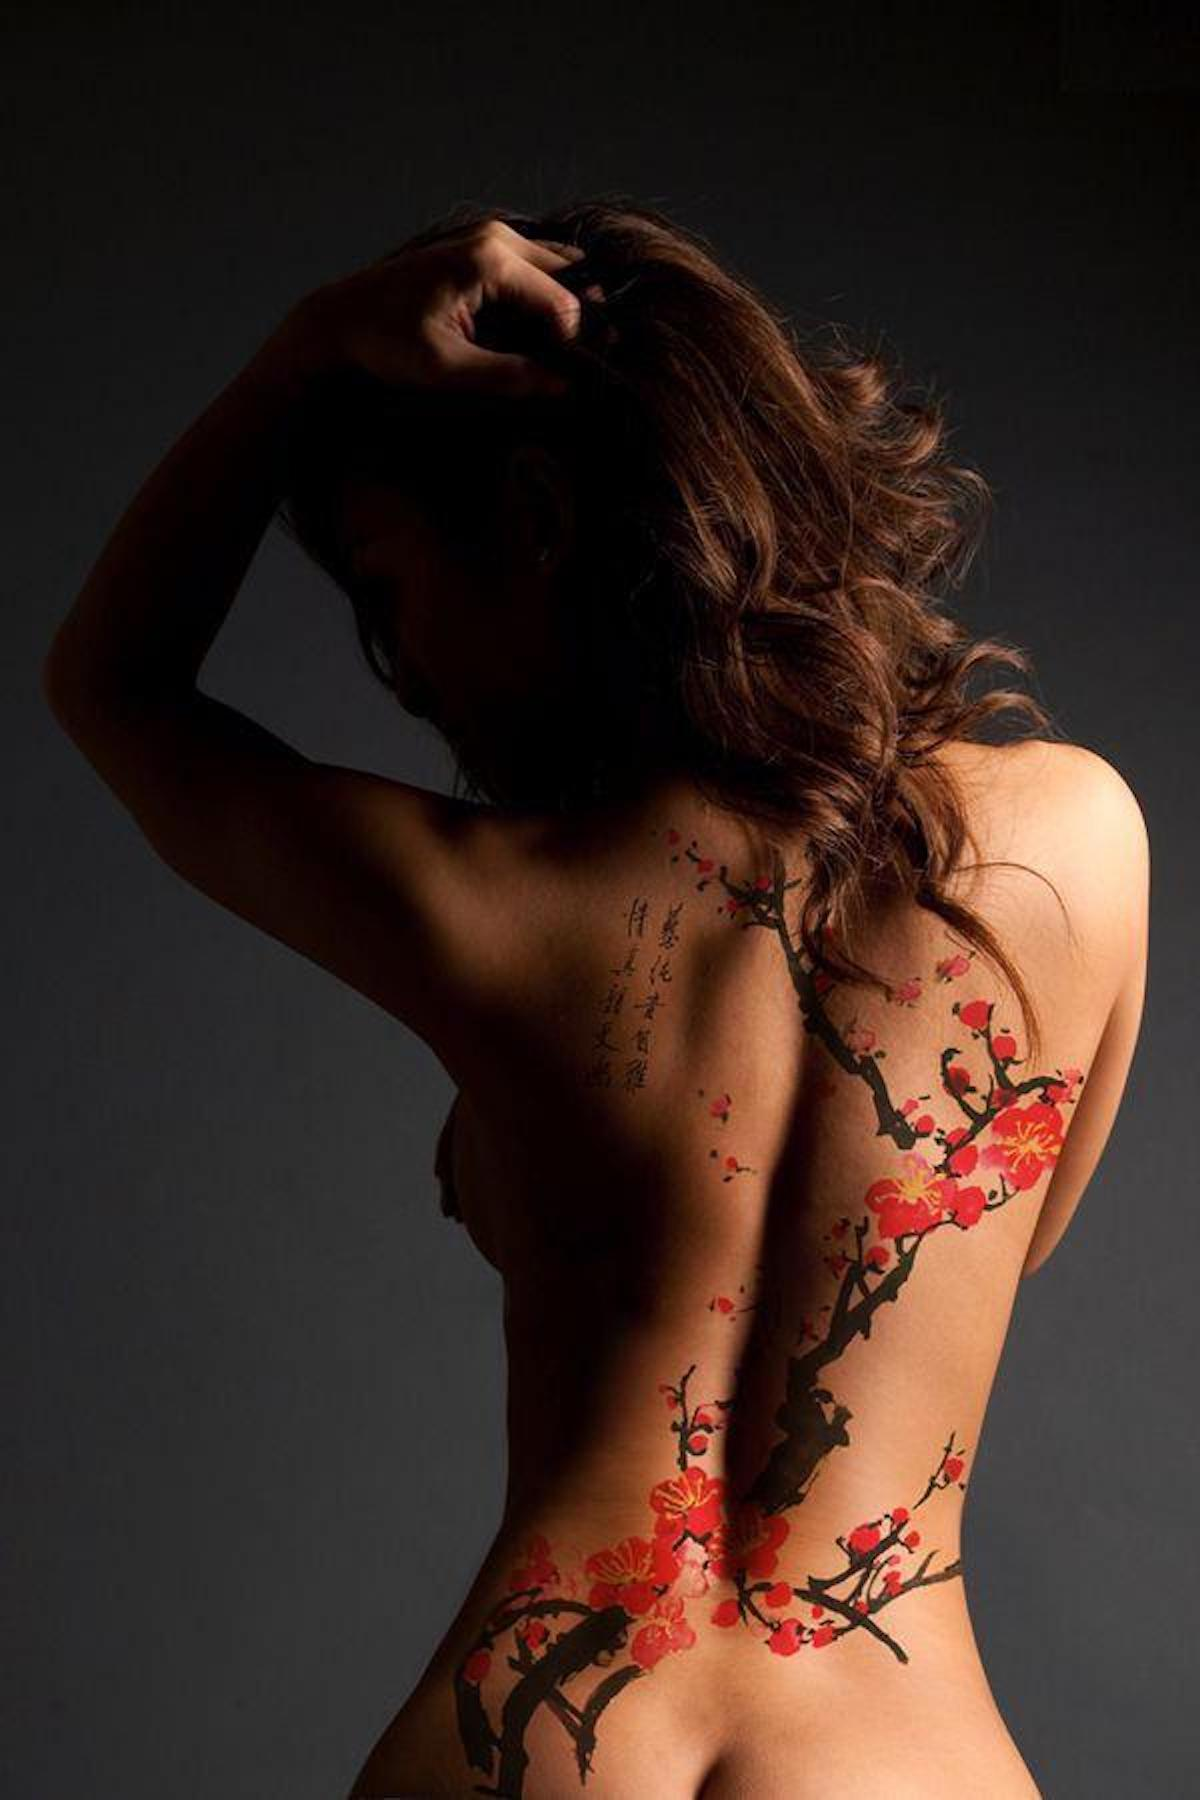 Sakura blossom tattoo in the sexy woman's back